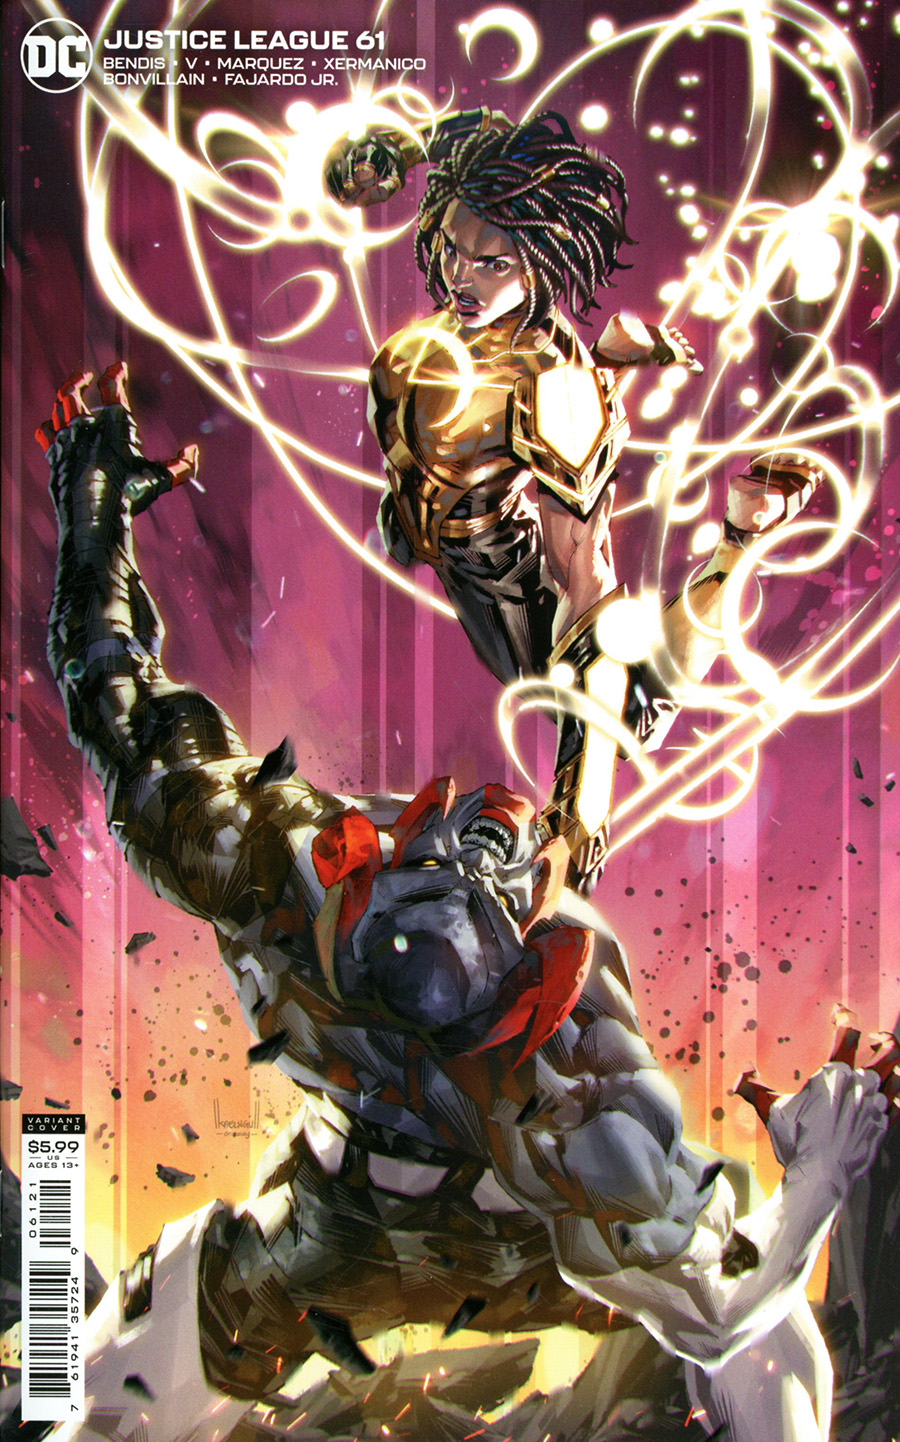 Justice League Vol 4 #61 Cover B Variant Kael Ngu Card Stock Cover